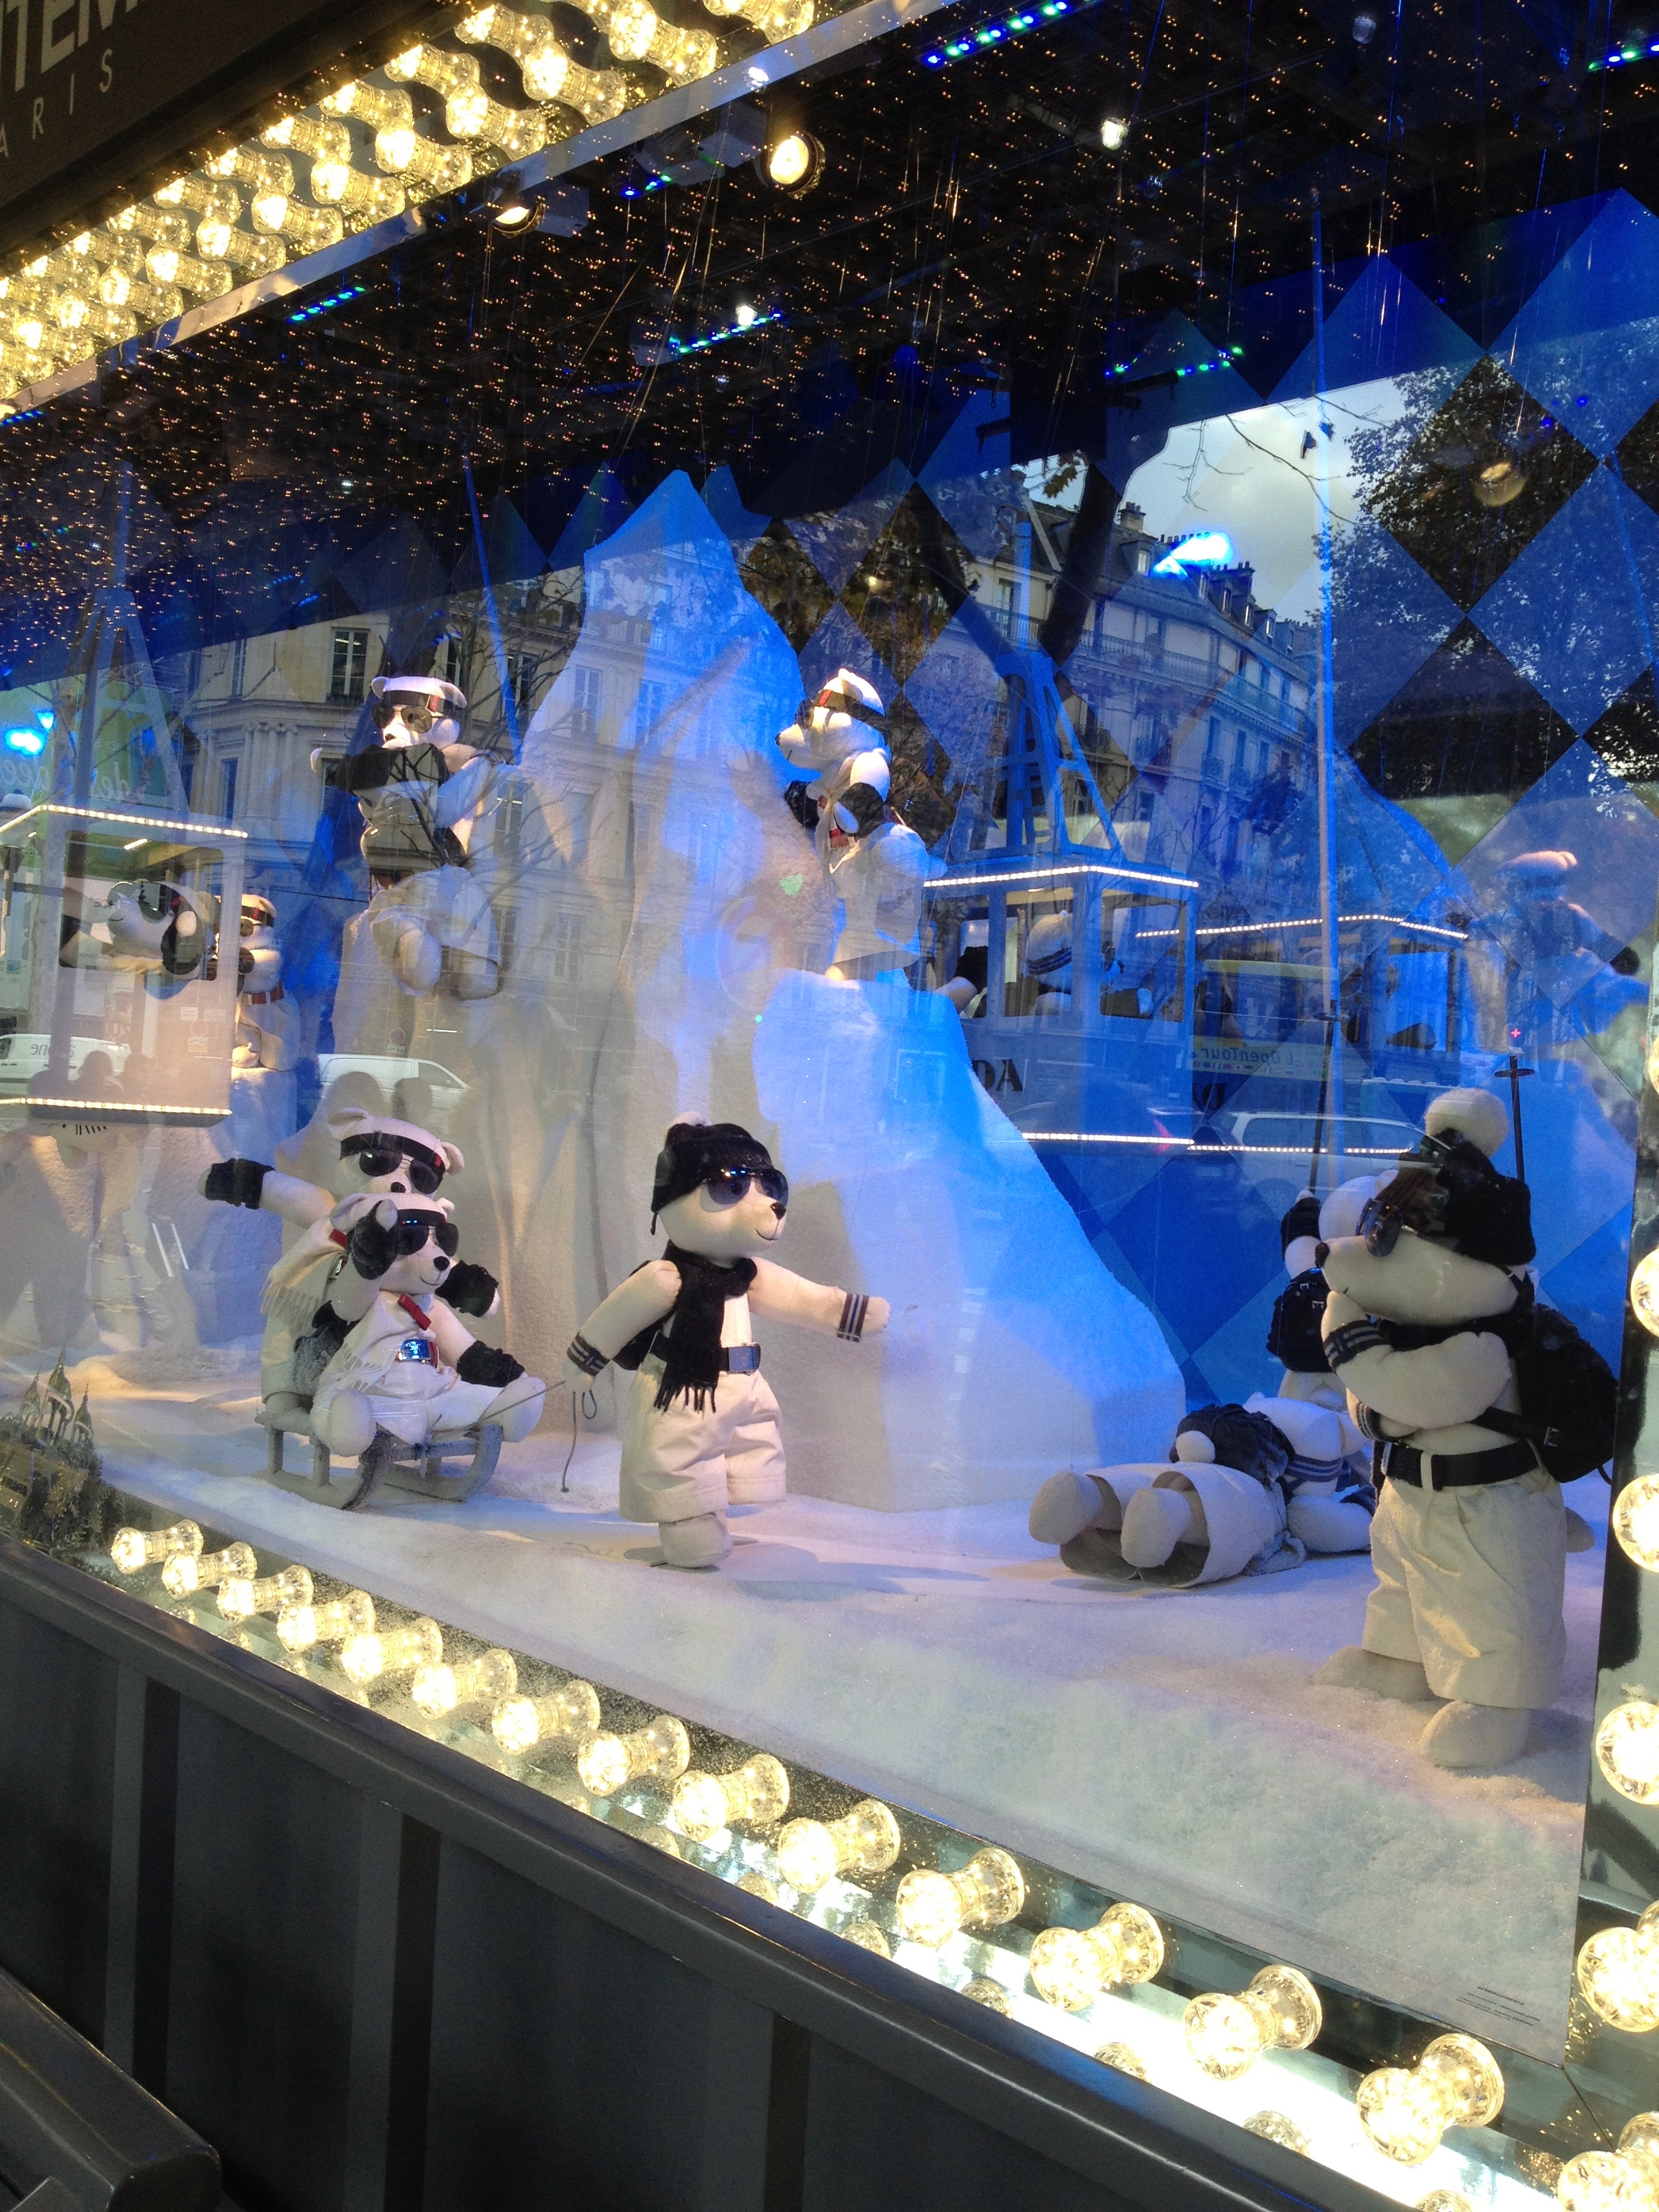 Printemps Prada snow window display with each mechanical teddy wearing a mini Prada backpack.